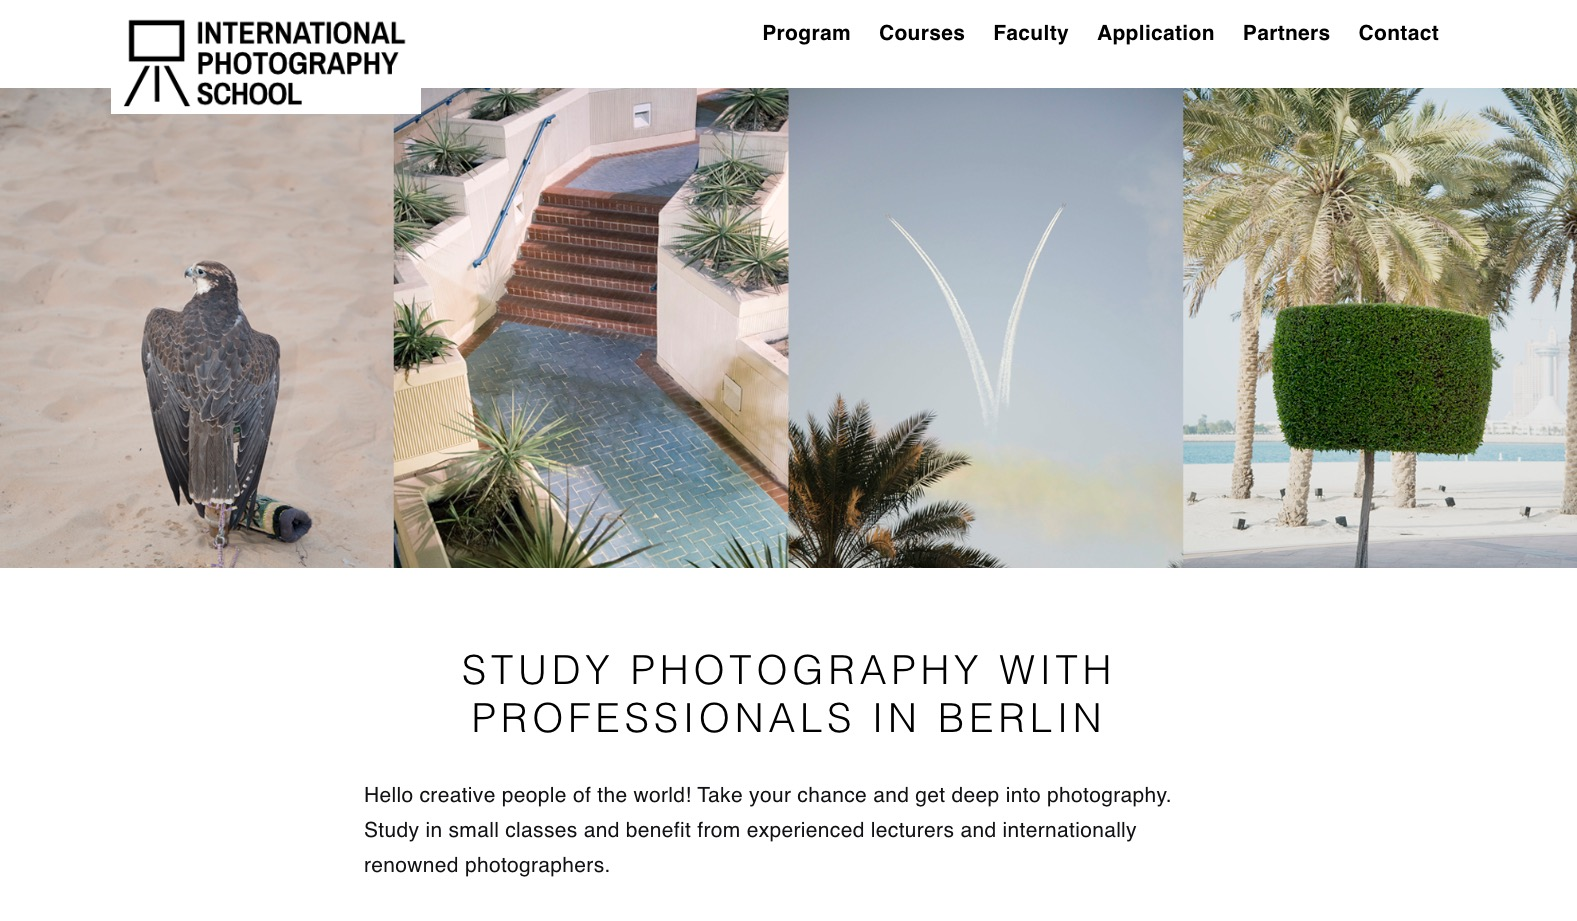 International Photography School Berlin